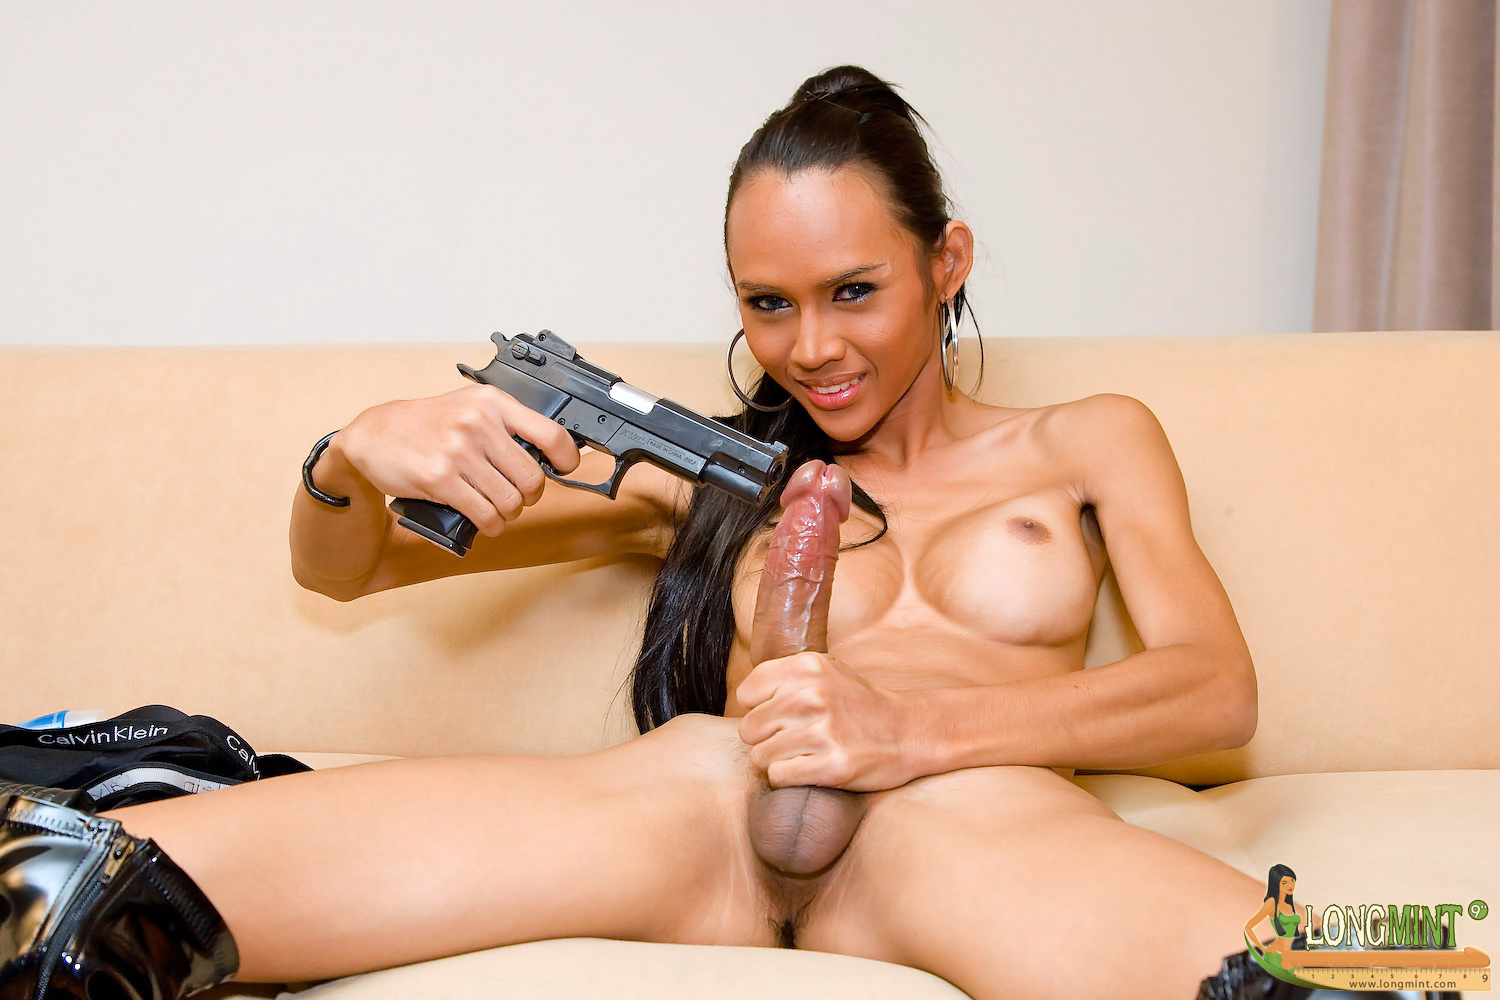 Girl masturbates with gun porn